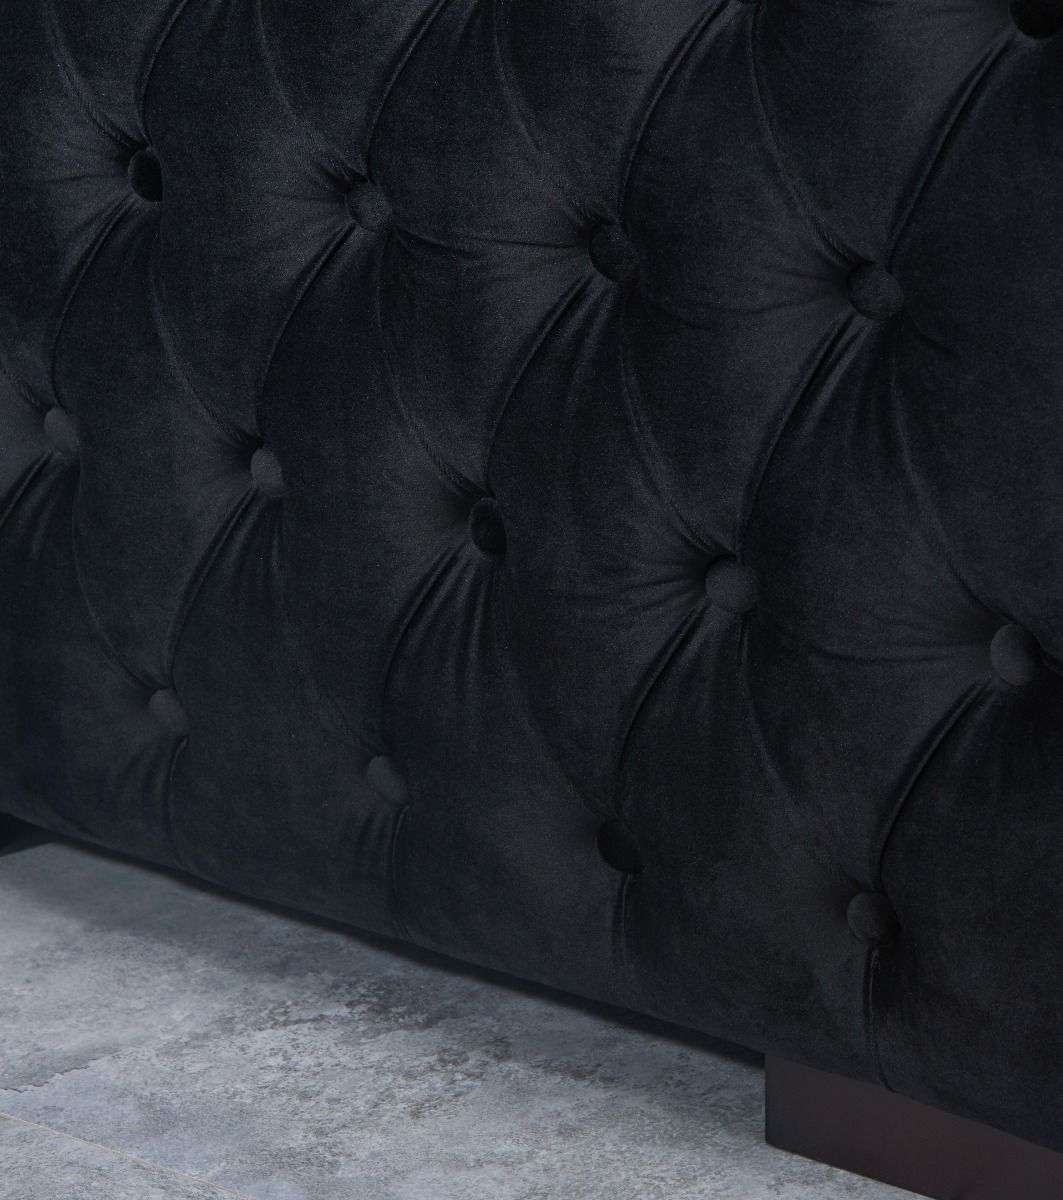 Moscow 3 Seater Sofa - Black